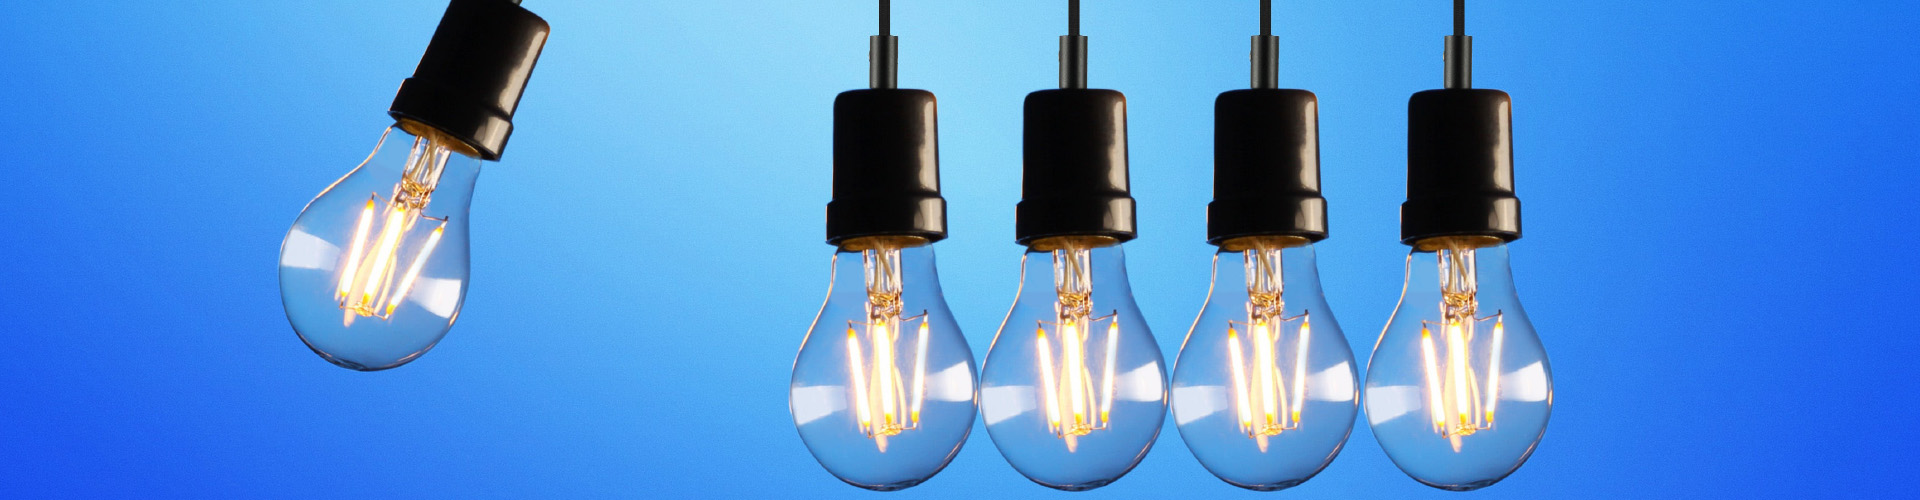 Energy prices still on the up